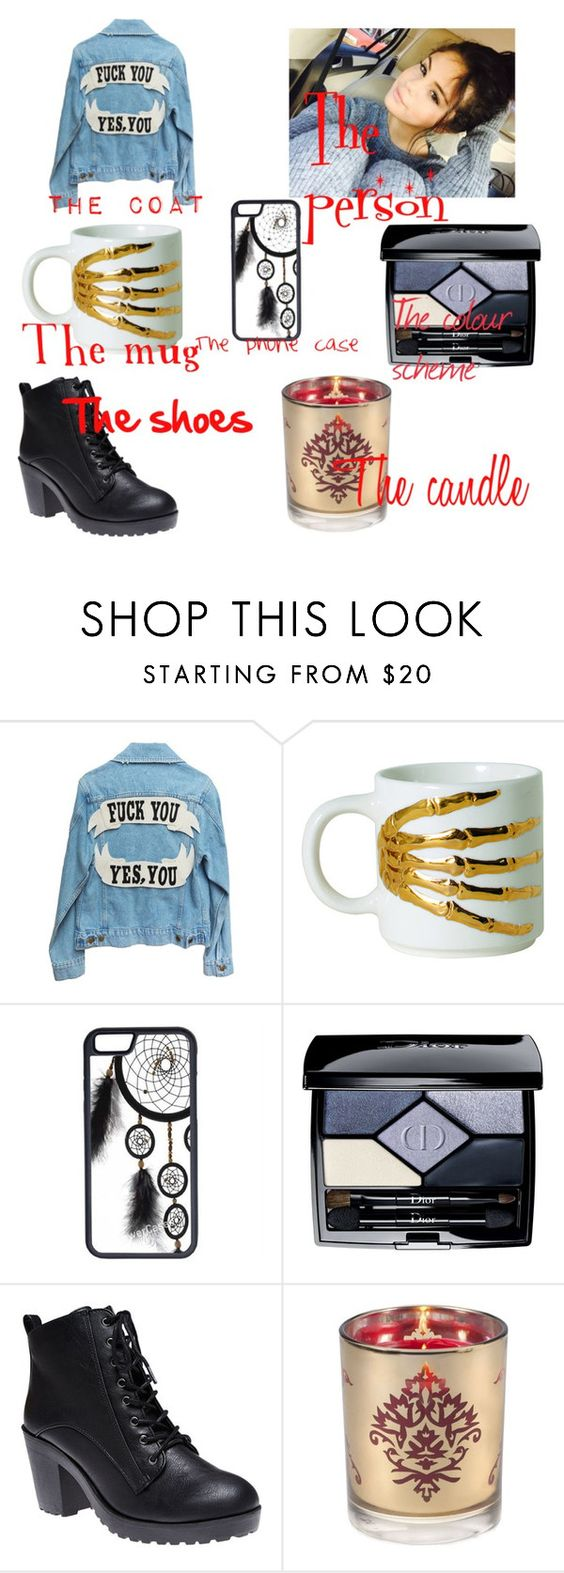 """""""challenge!!"""" by nutella-mermaid ❤ liked on Polyvore featuring Imm Living, CellPowerCases, Christian Dior, Wet Seal and Aromatique"""